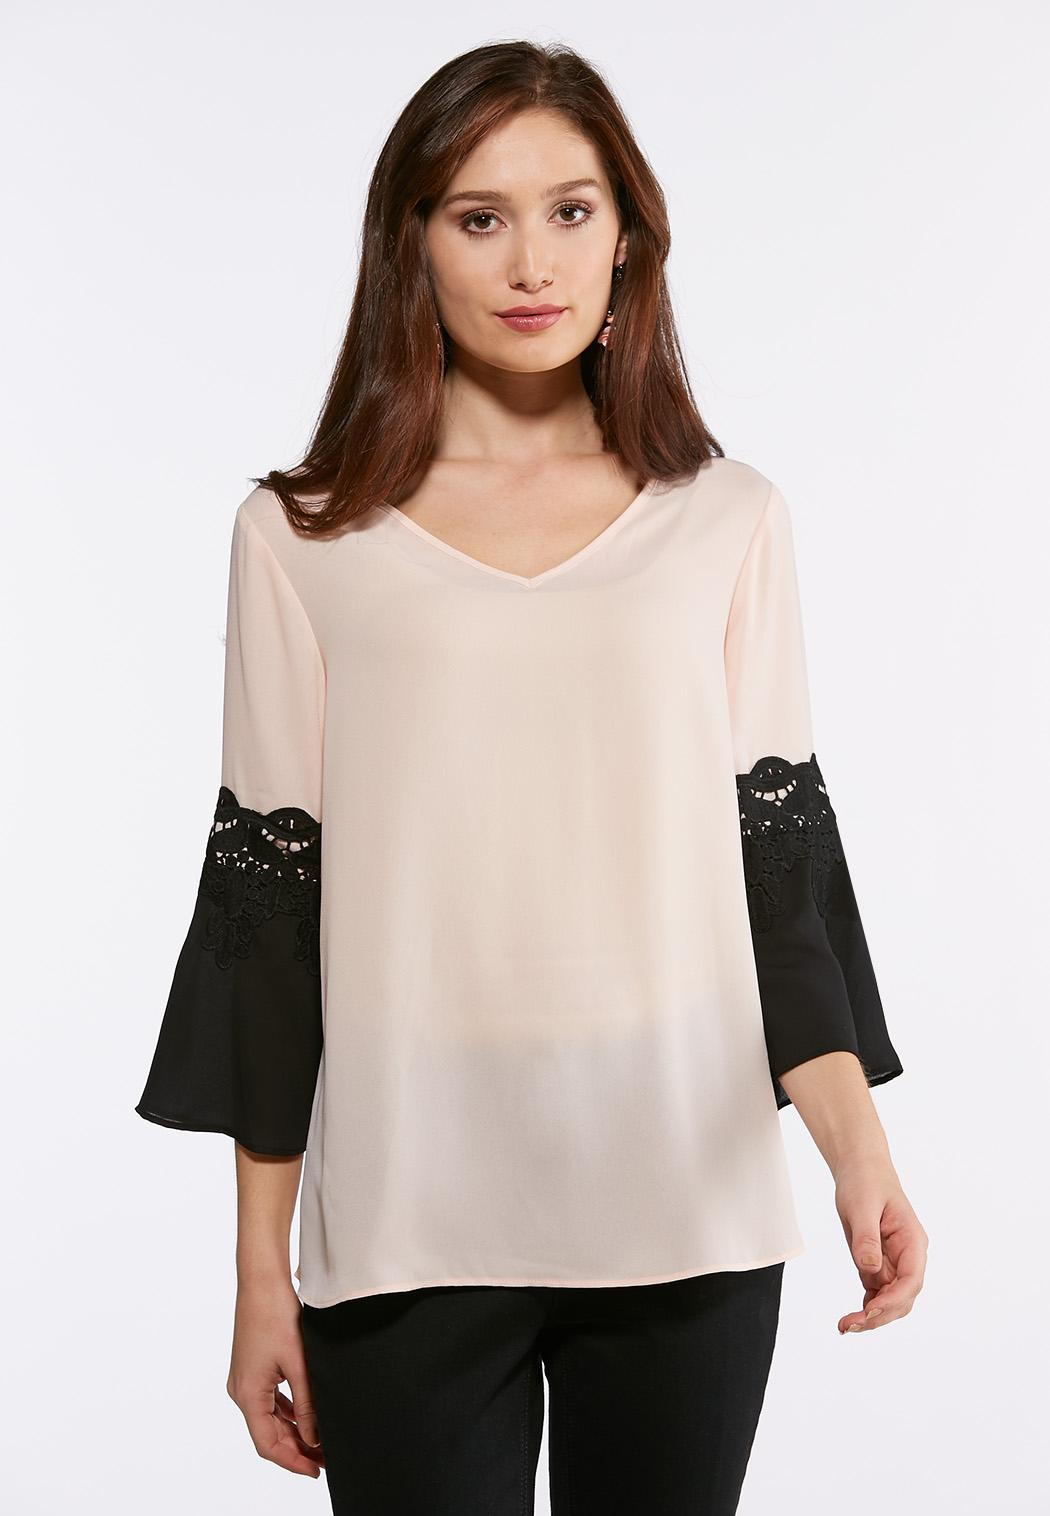 Plus Size Lace Trim Bell Sleeve Top Shirts Blouses Cato Fashions